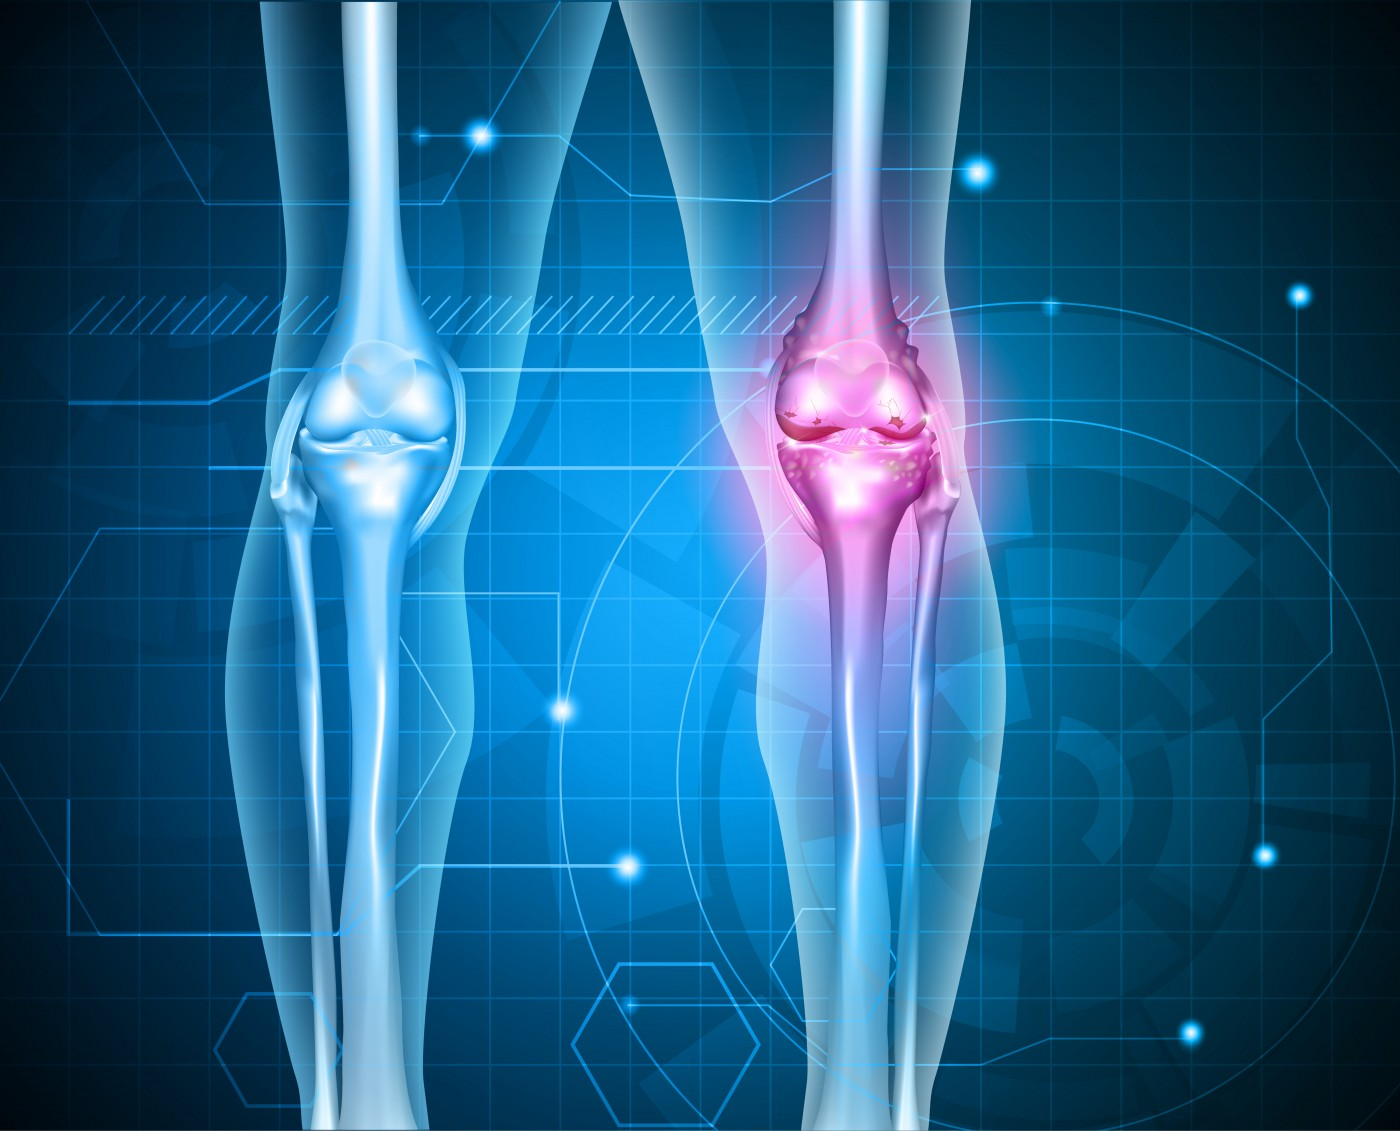 Study Provides Insight into Immune Differences in Patients with Early Rheumatoid Arthritis